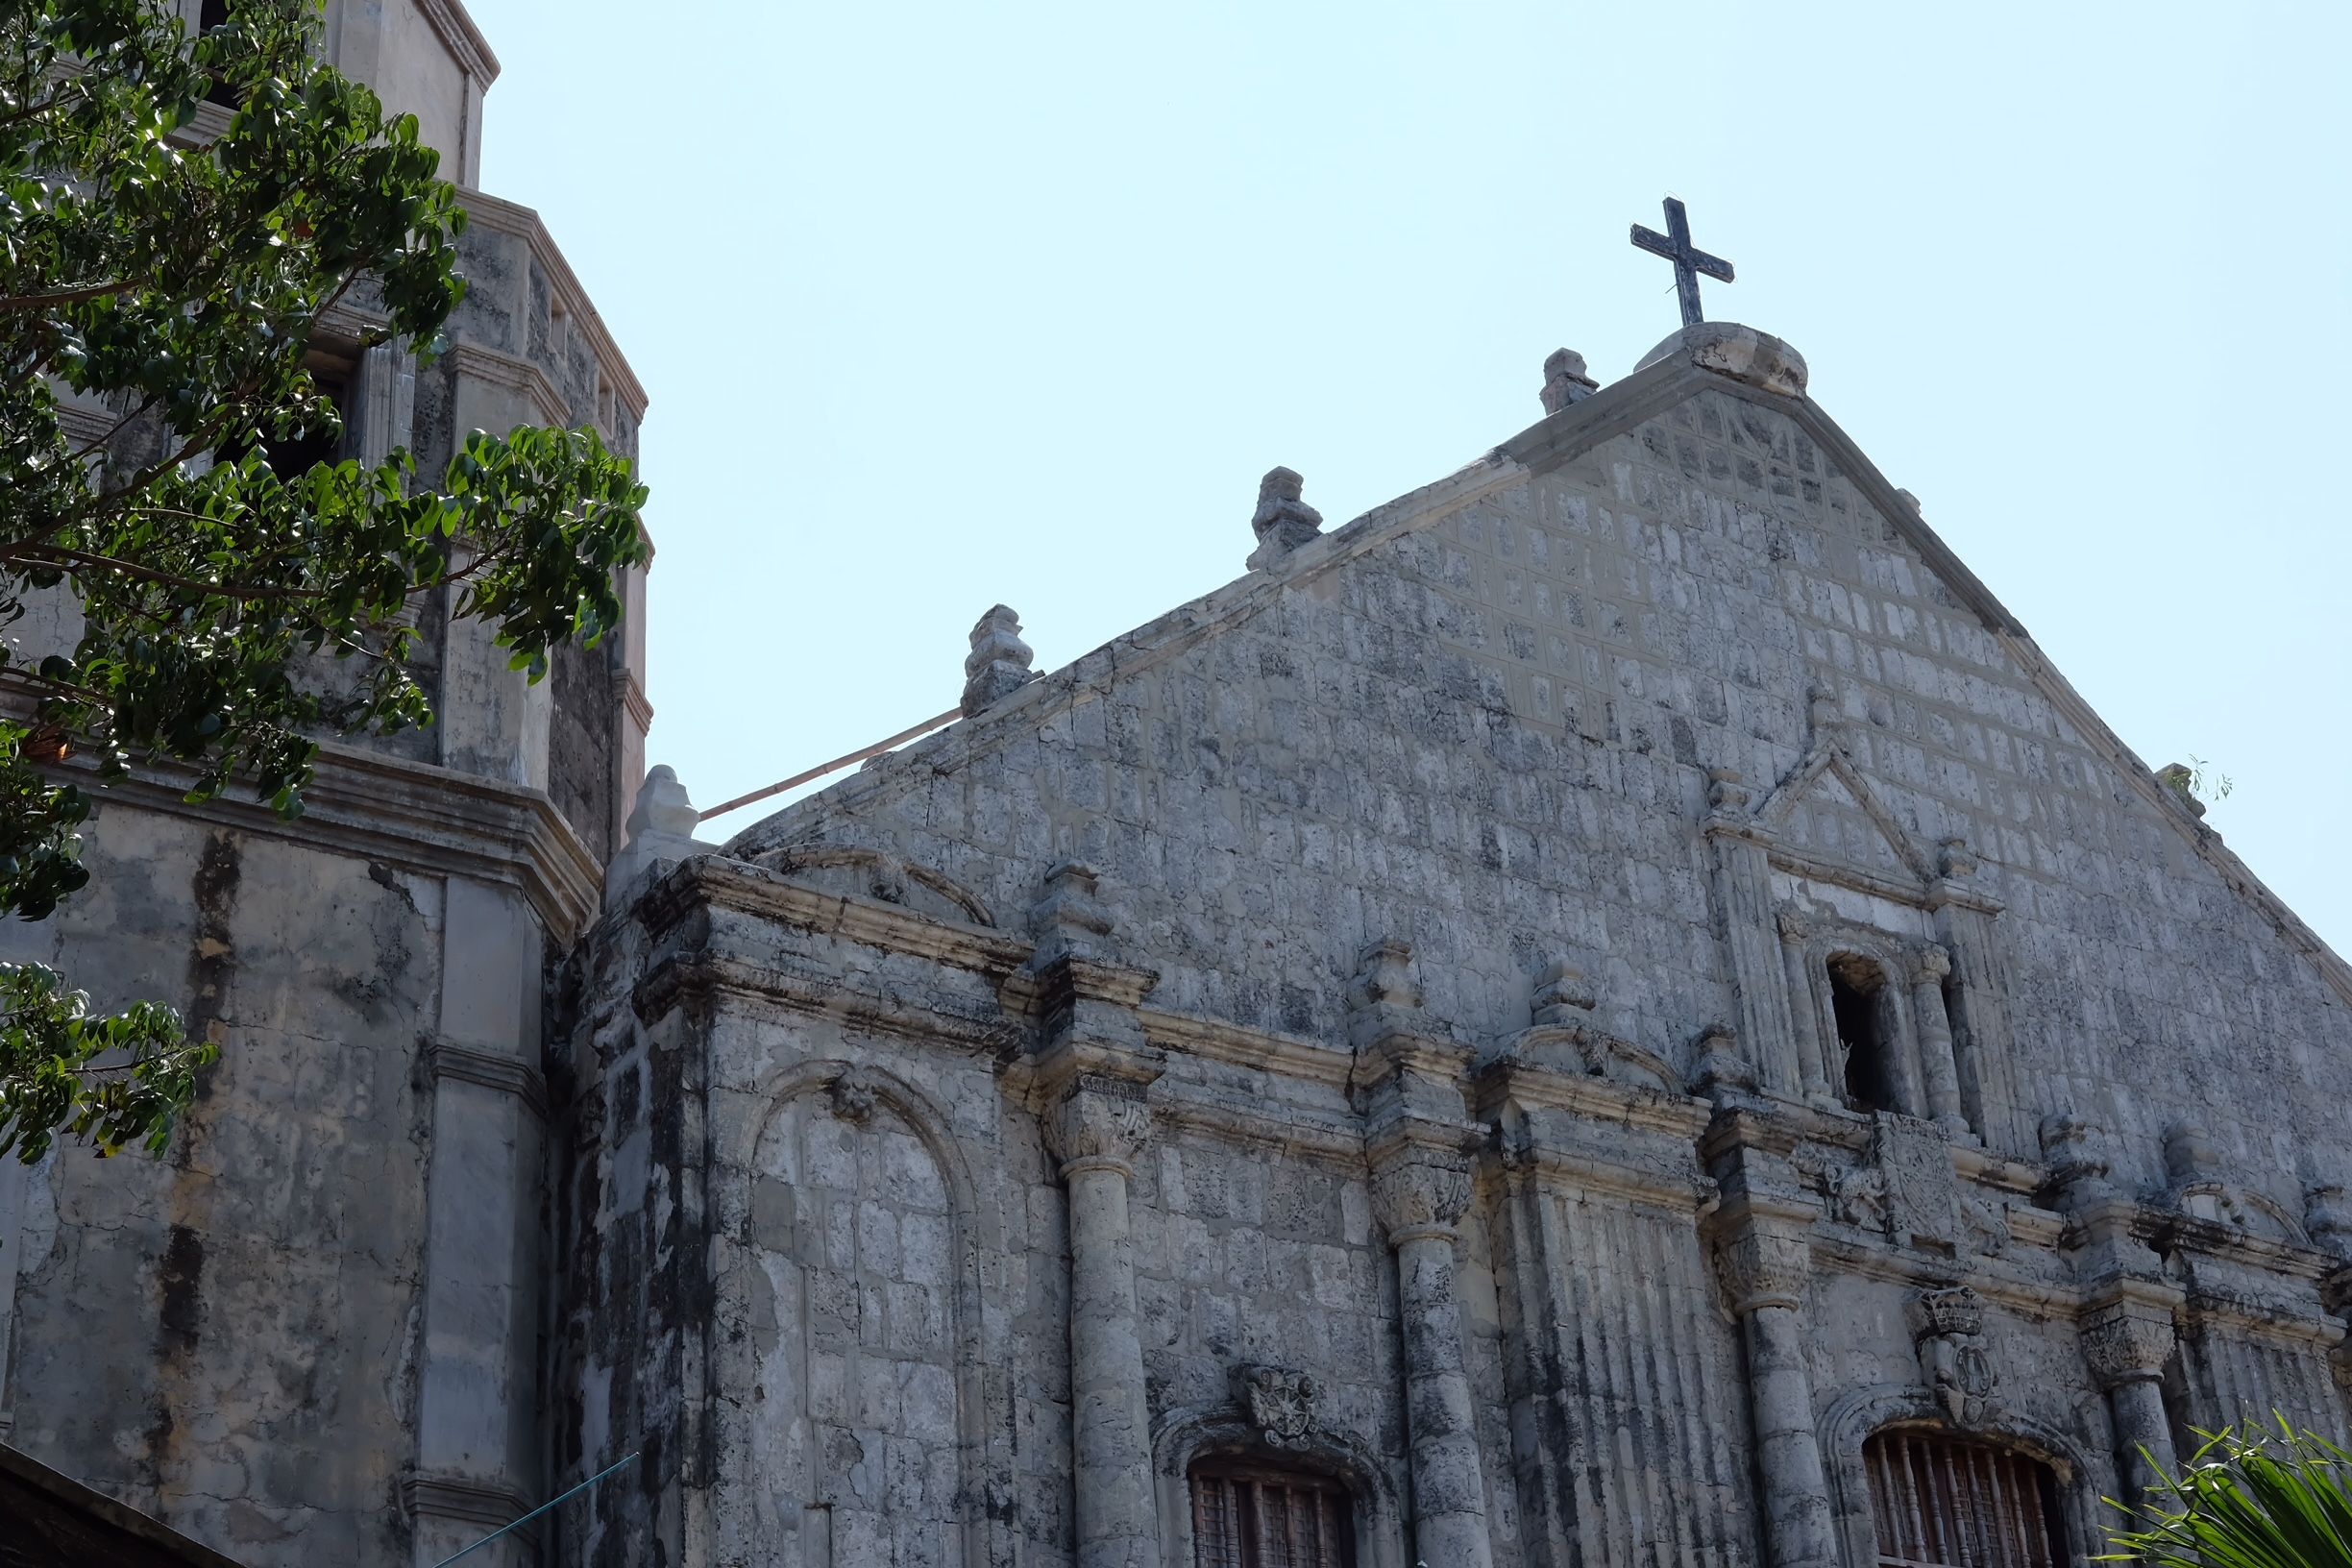 Bolinao's oldest church, St. James the Great. A Spanish colonial structure over 400 years old